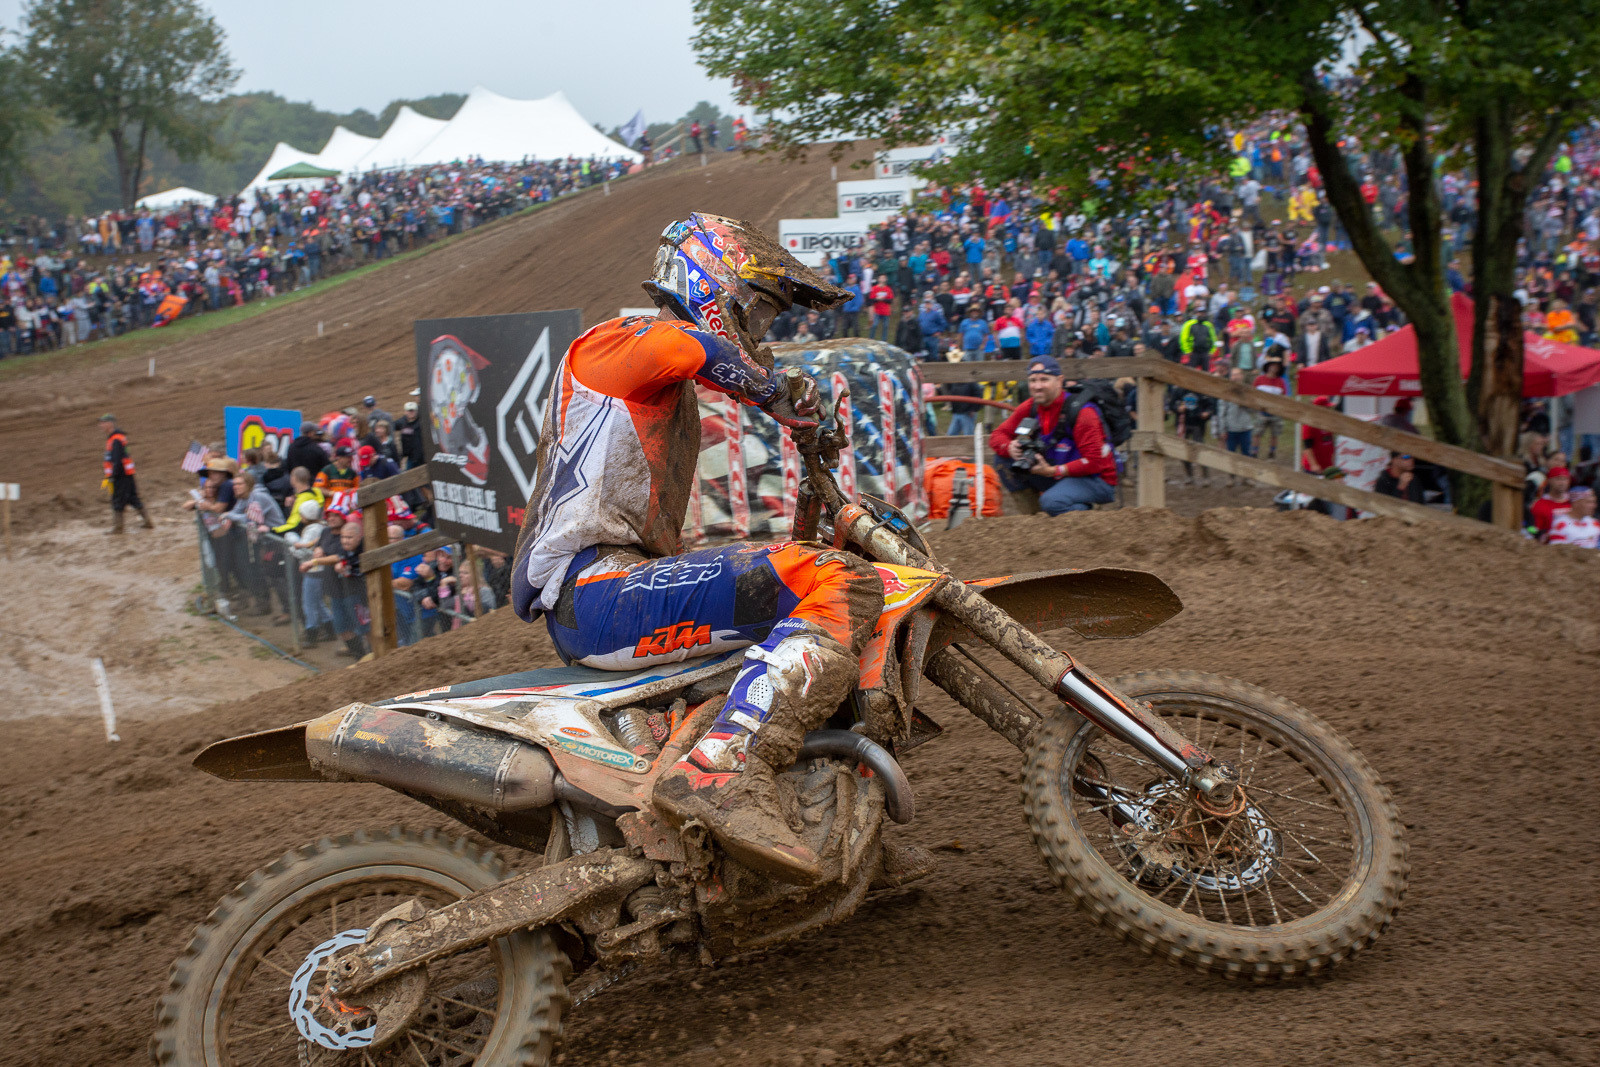 Jeffrey Herlings took over the top spot about halfway through the moto, and cruised to a first moto win.